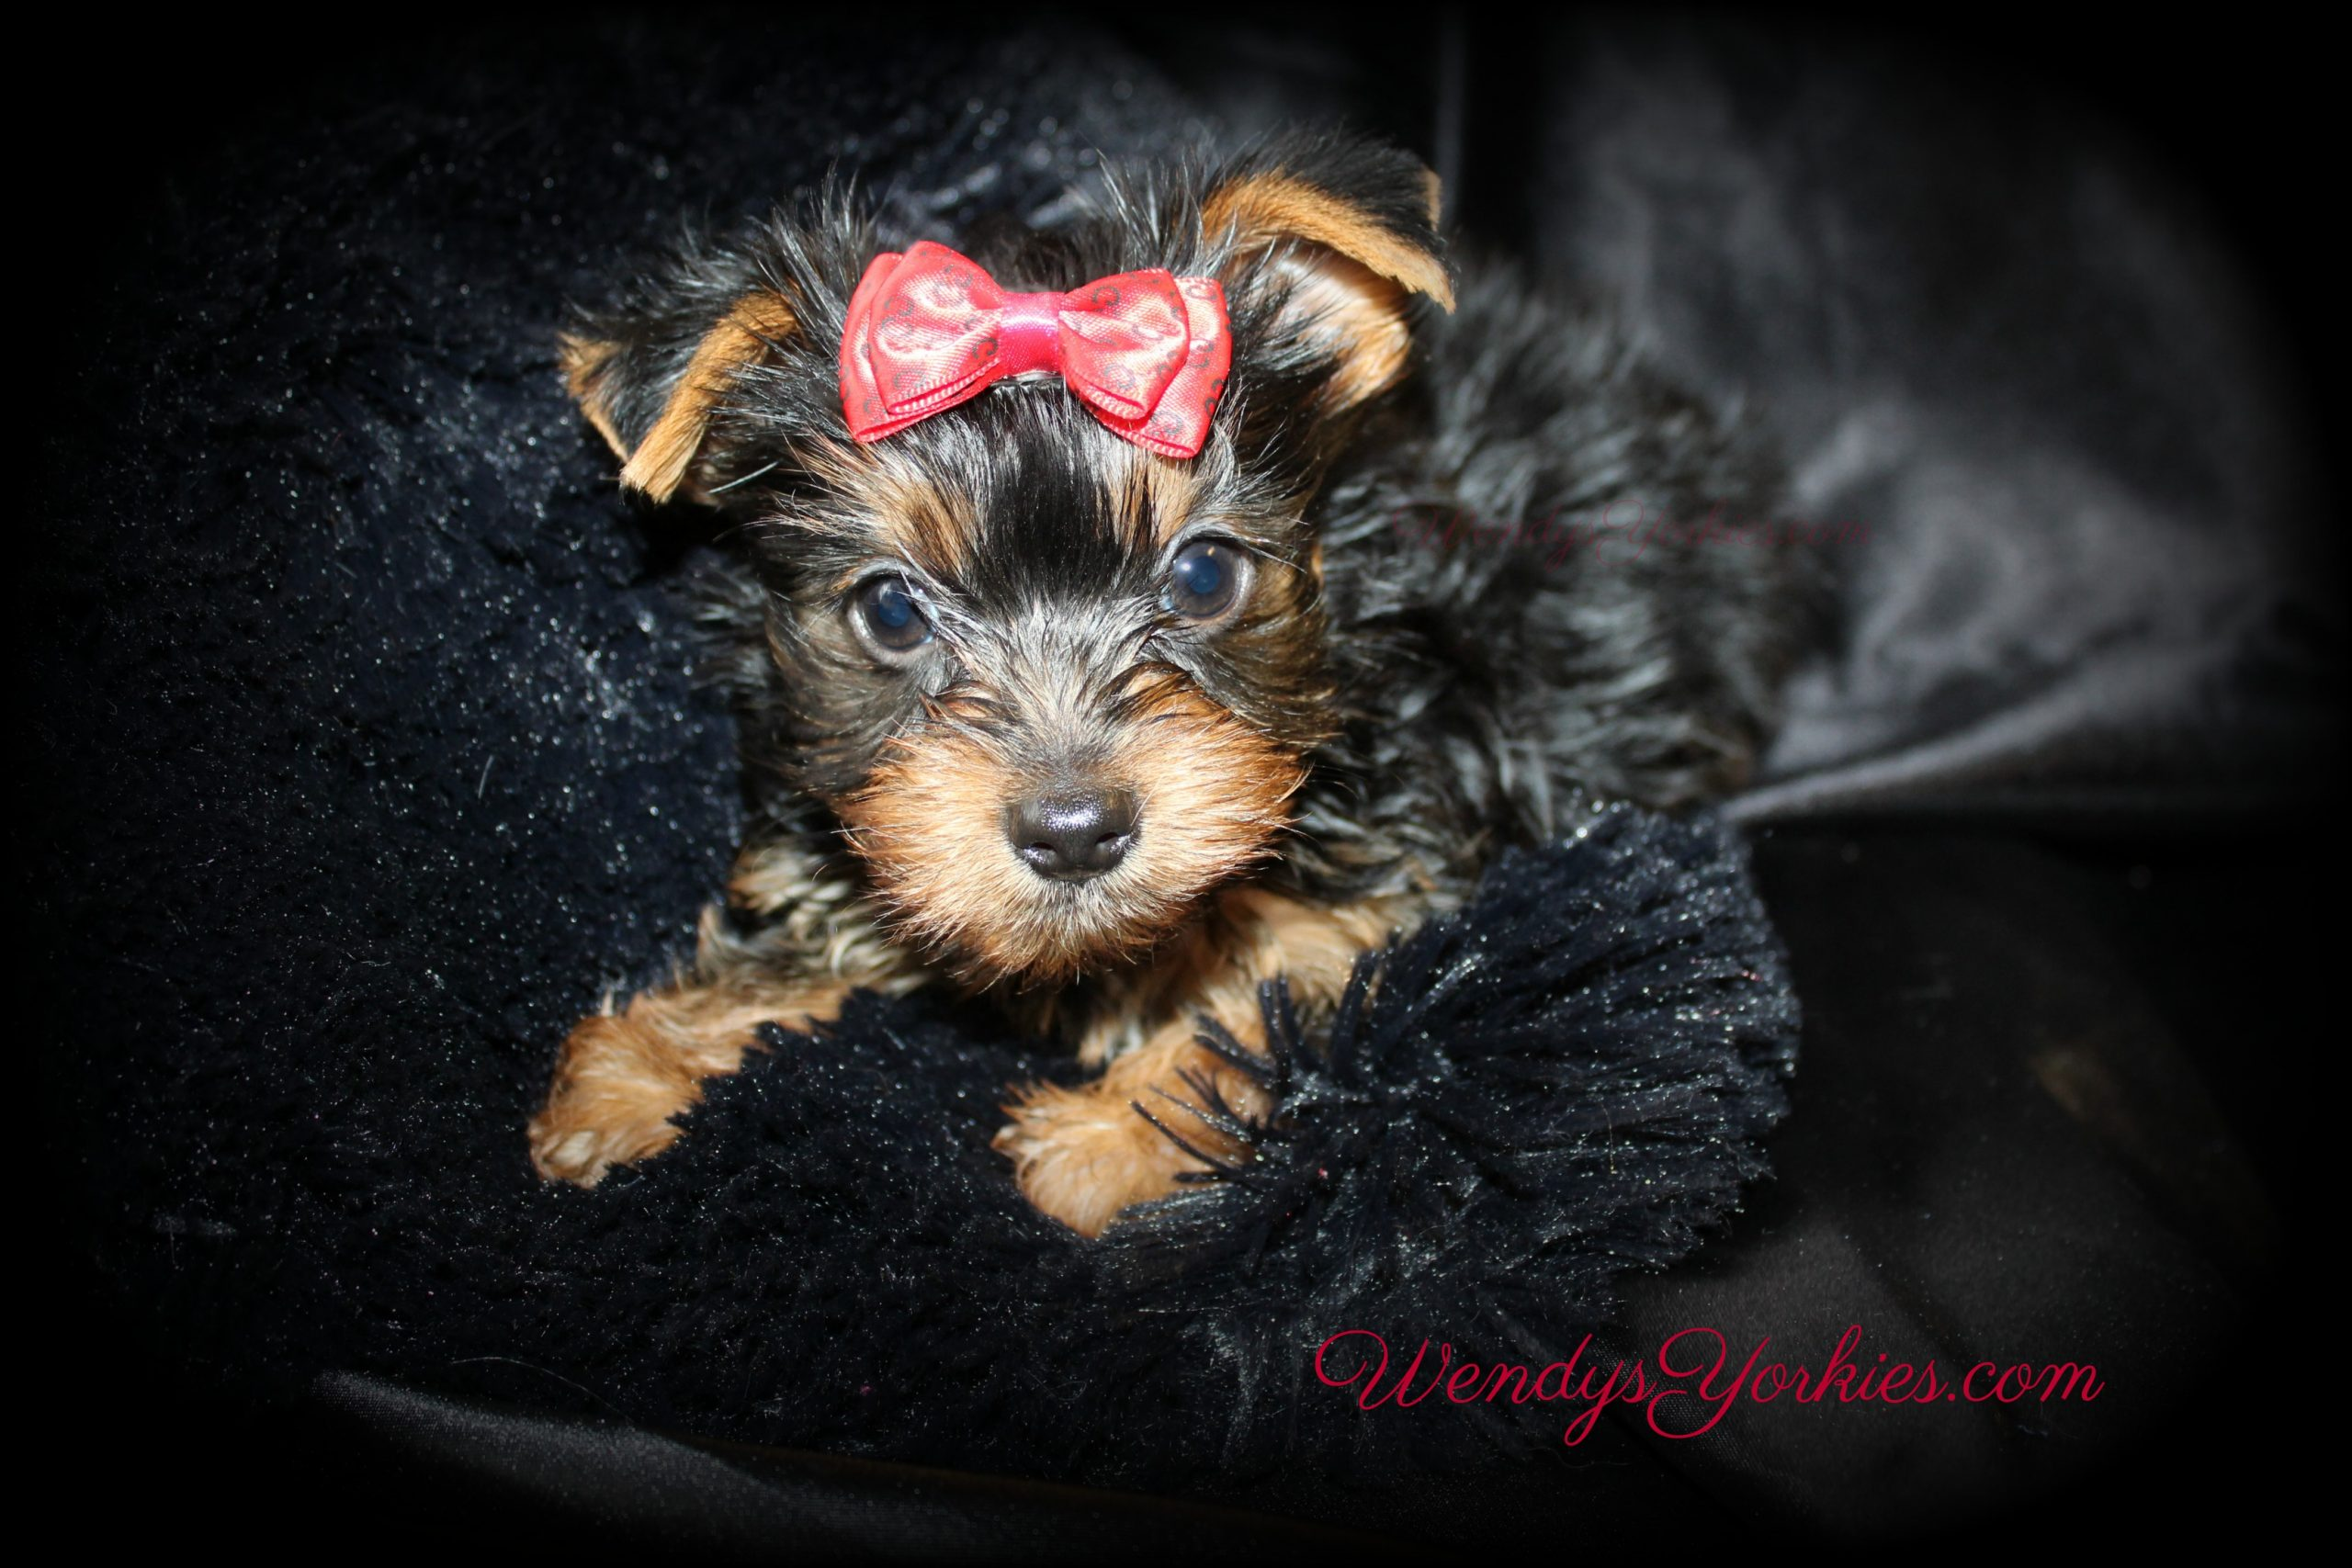 Male Yorkie puppy for sale, Anna m1, WendysYorkies.com